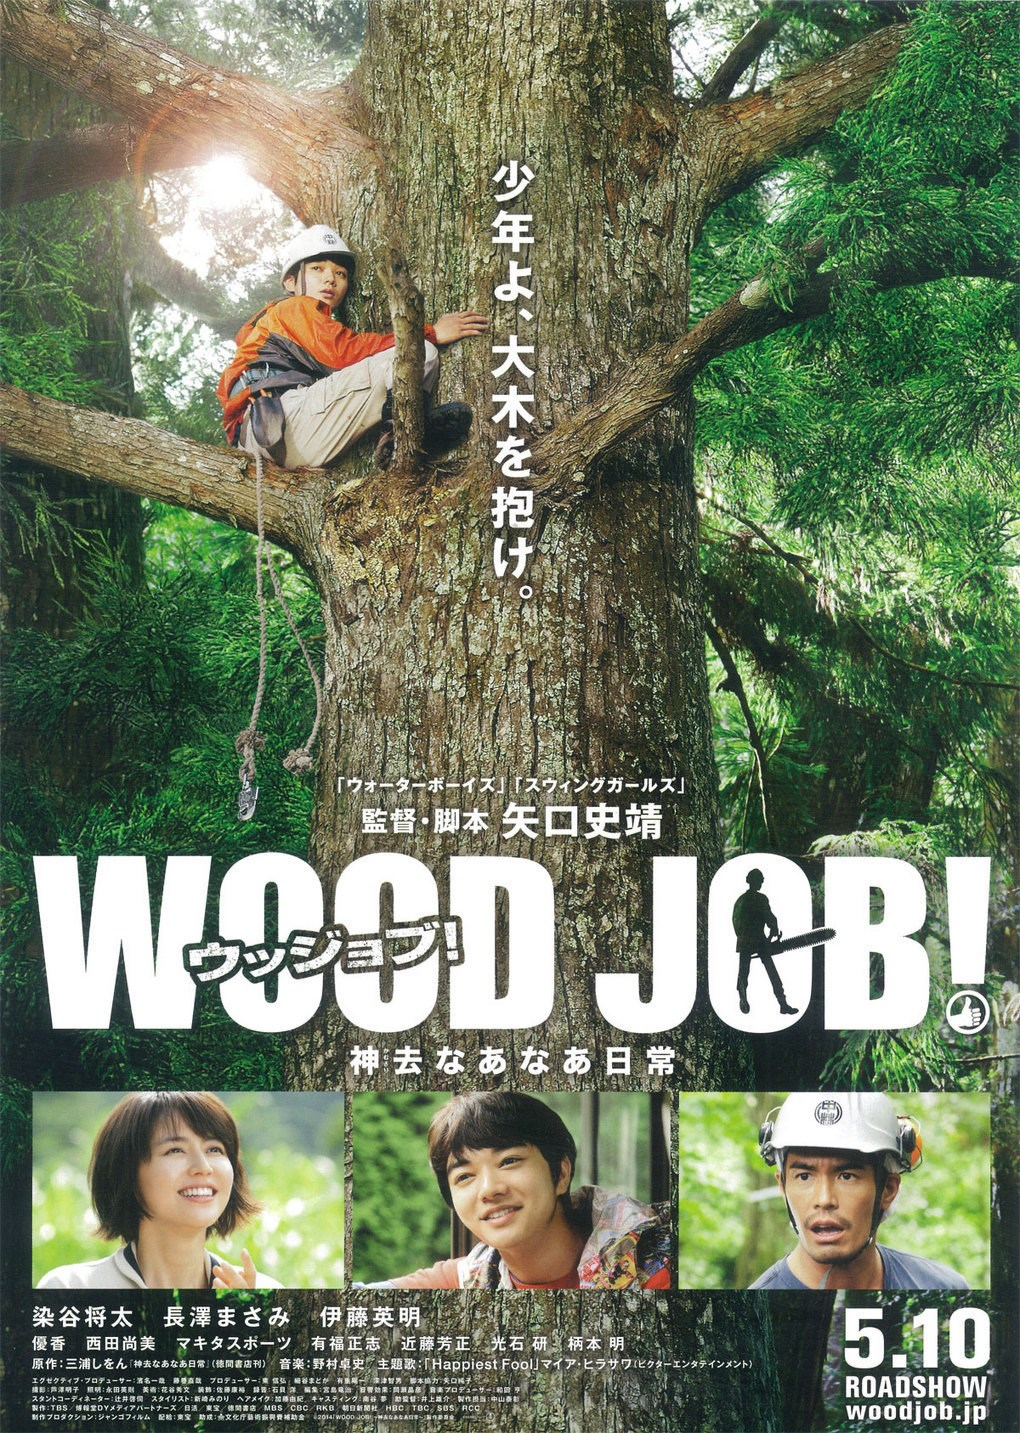 wood job arabic hearing impaired subtitle poster